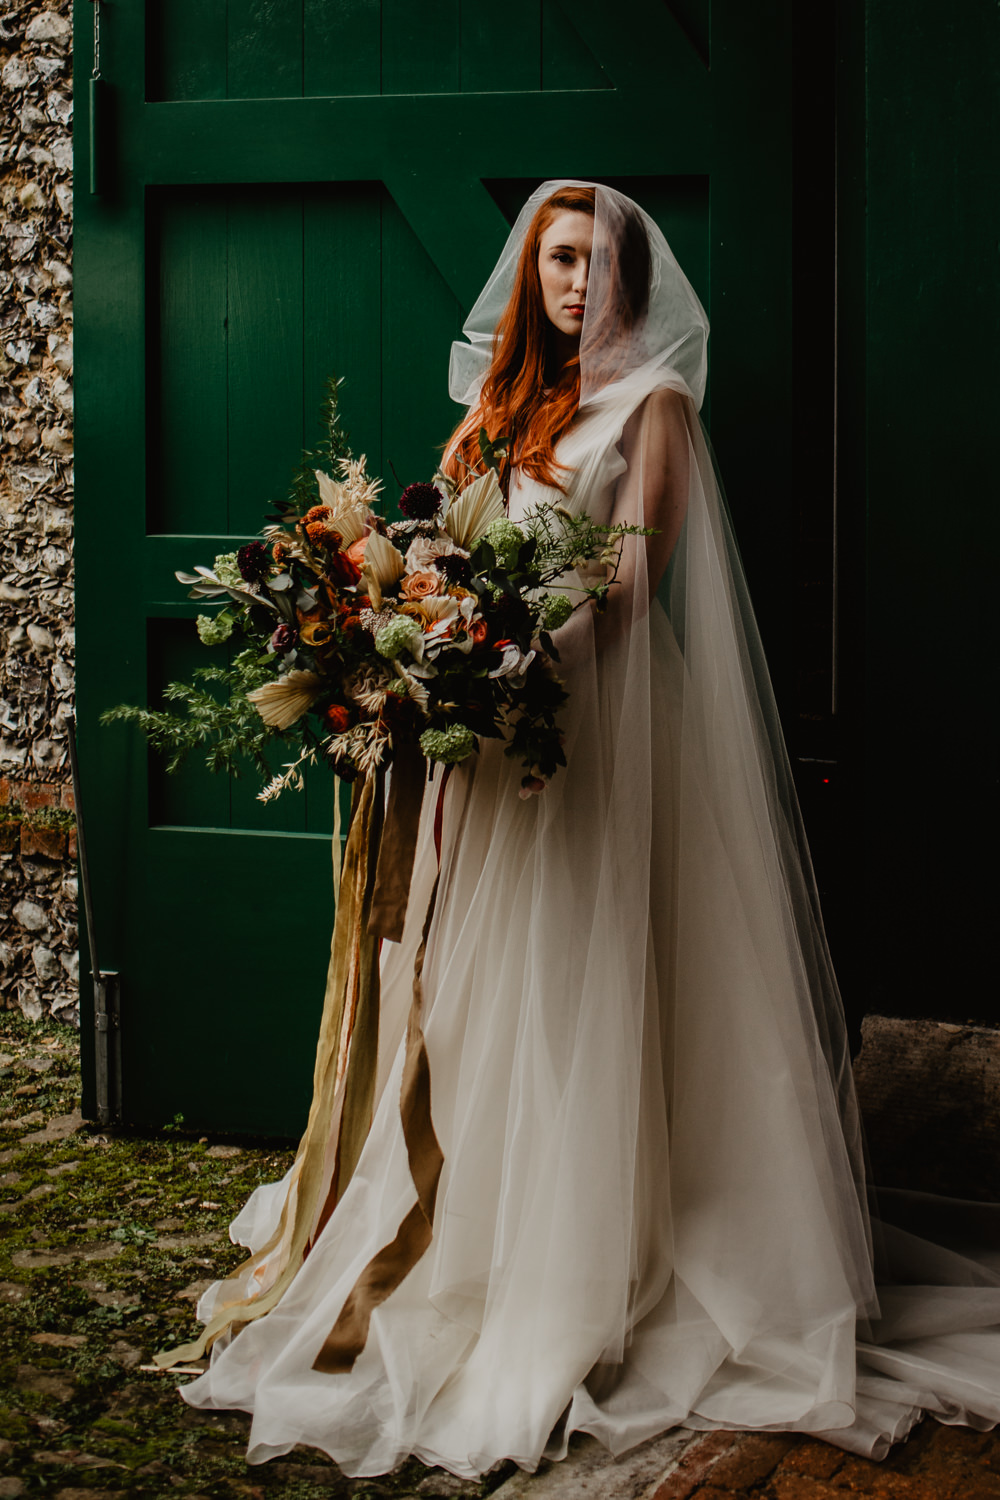 Dress Gown Bride Bridal Organza Ballet Cape Veil Hood Bouquet Flowers Bride Bridal Ribbons Orange Rose Dried Flowers Seed Heads Large Oversized Autumn Fall Elopement Wedding Ideas Oilvejoy Photography